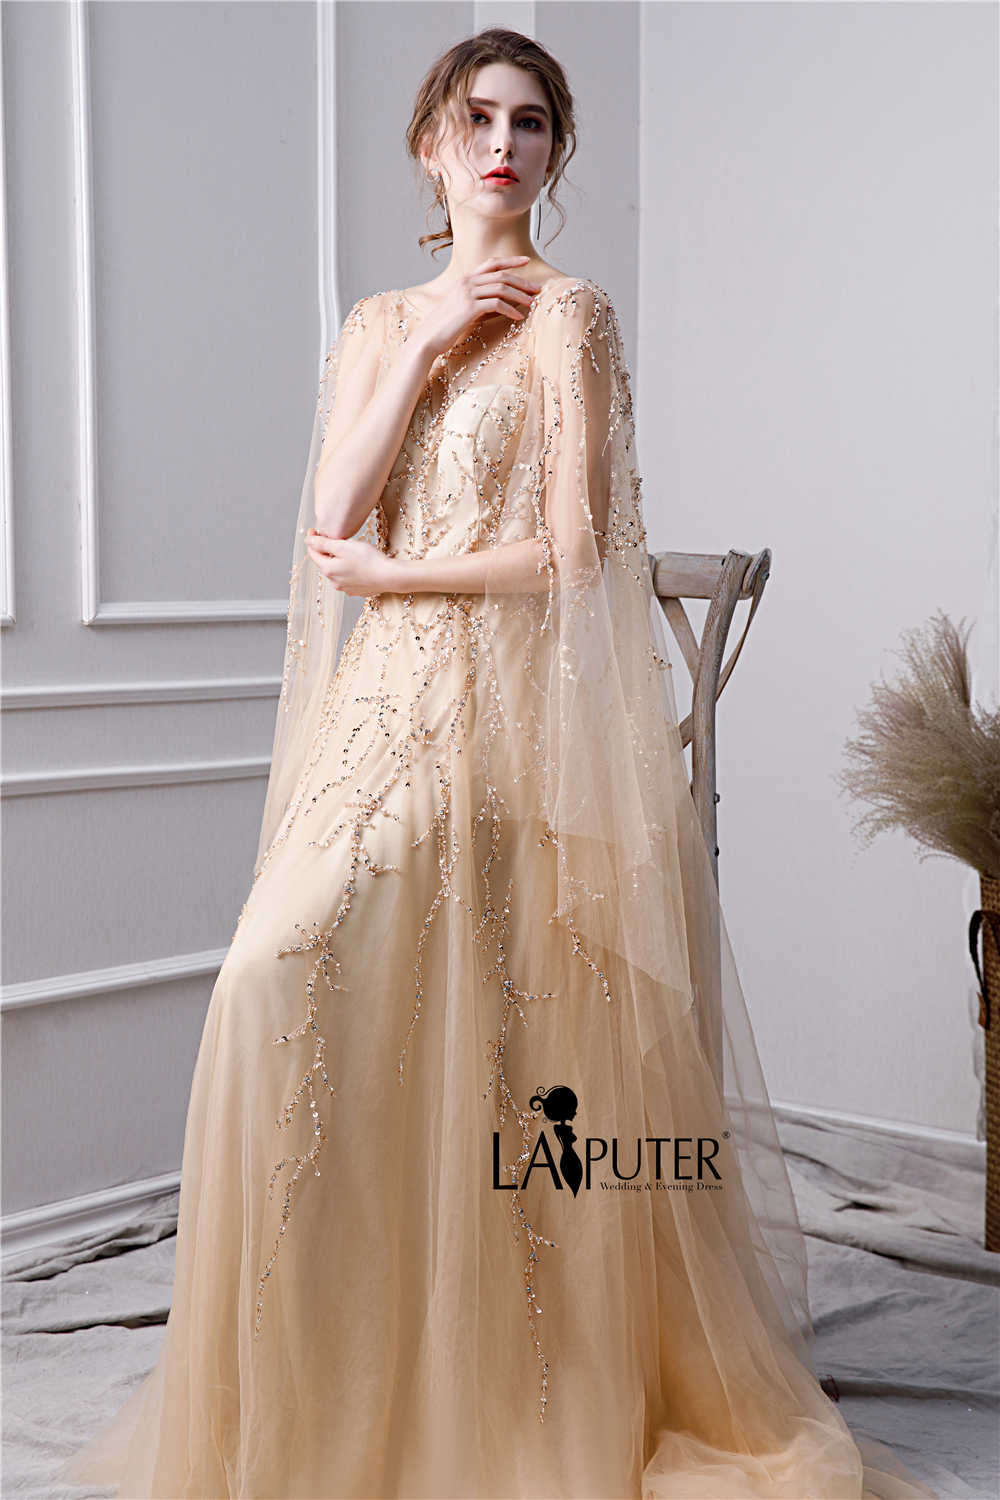 f3c02d8e83234 ... LAIPUTER 2019 New Evening Dresses with Luxury Beading Crystal Scoop  Neck V-back Cape Champagne